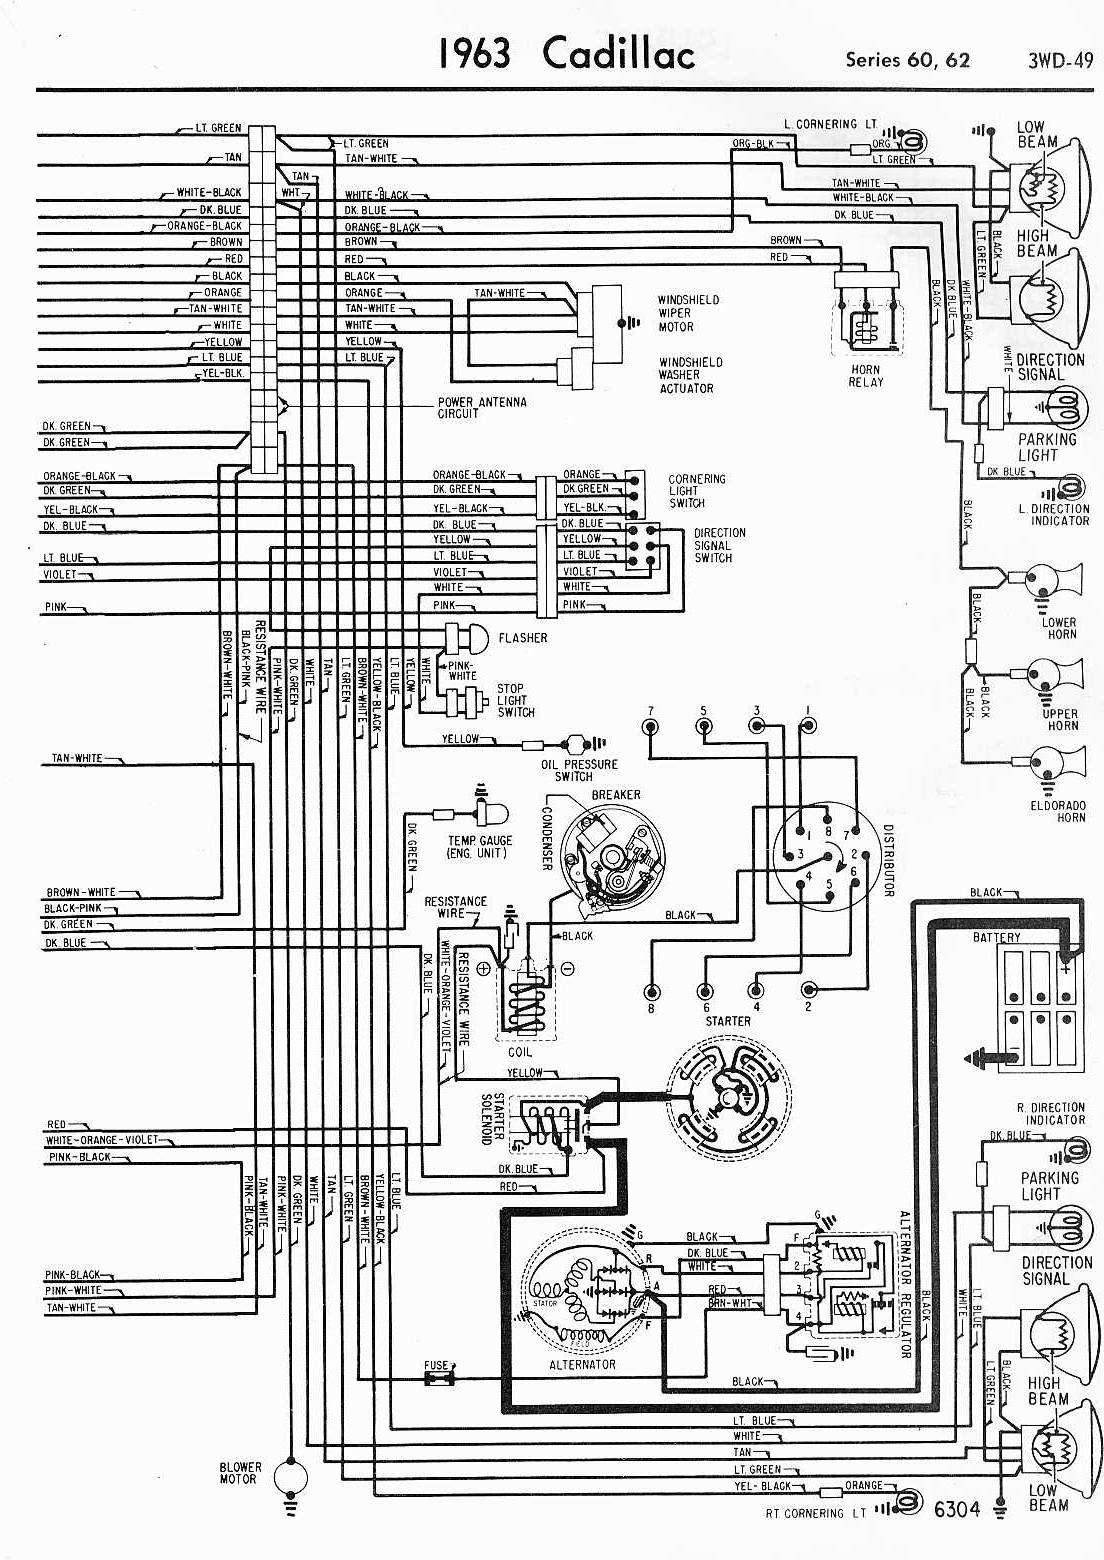 DIAGRAM] Free Cadillac Vehicle Wiring Diagrams FULL Version HD Quality Wiring  Diagrams - WIRINGCOVERINGPDF.PLURIFIT.FR Wiring And Fuse Database